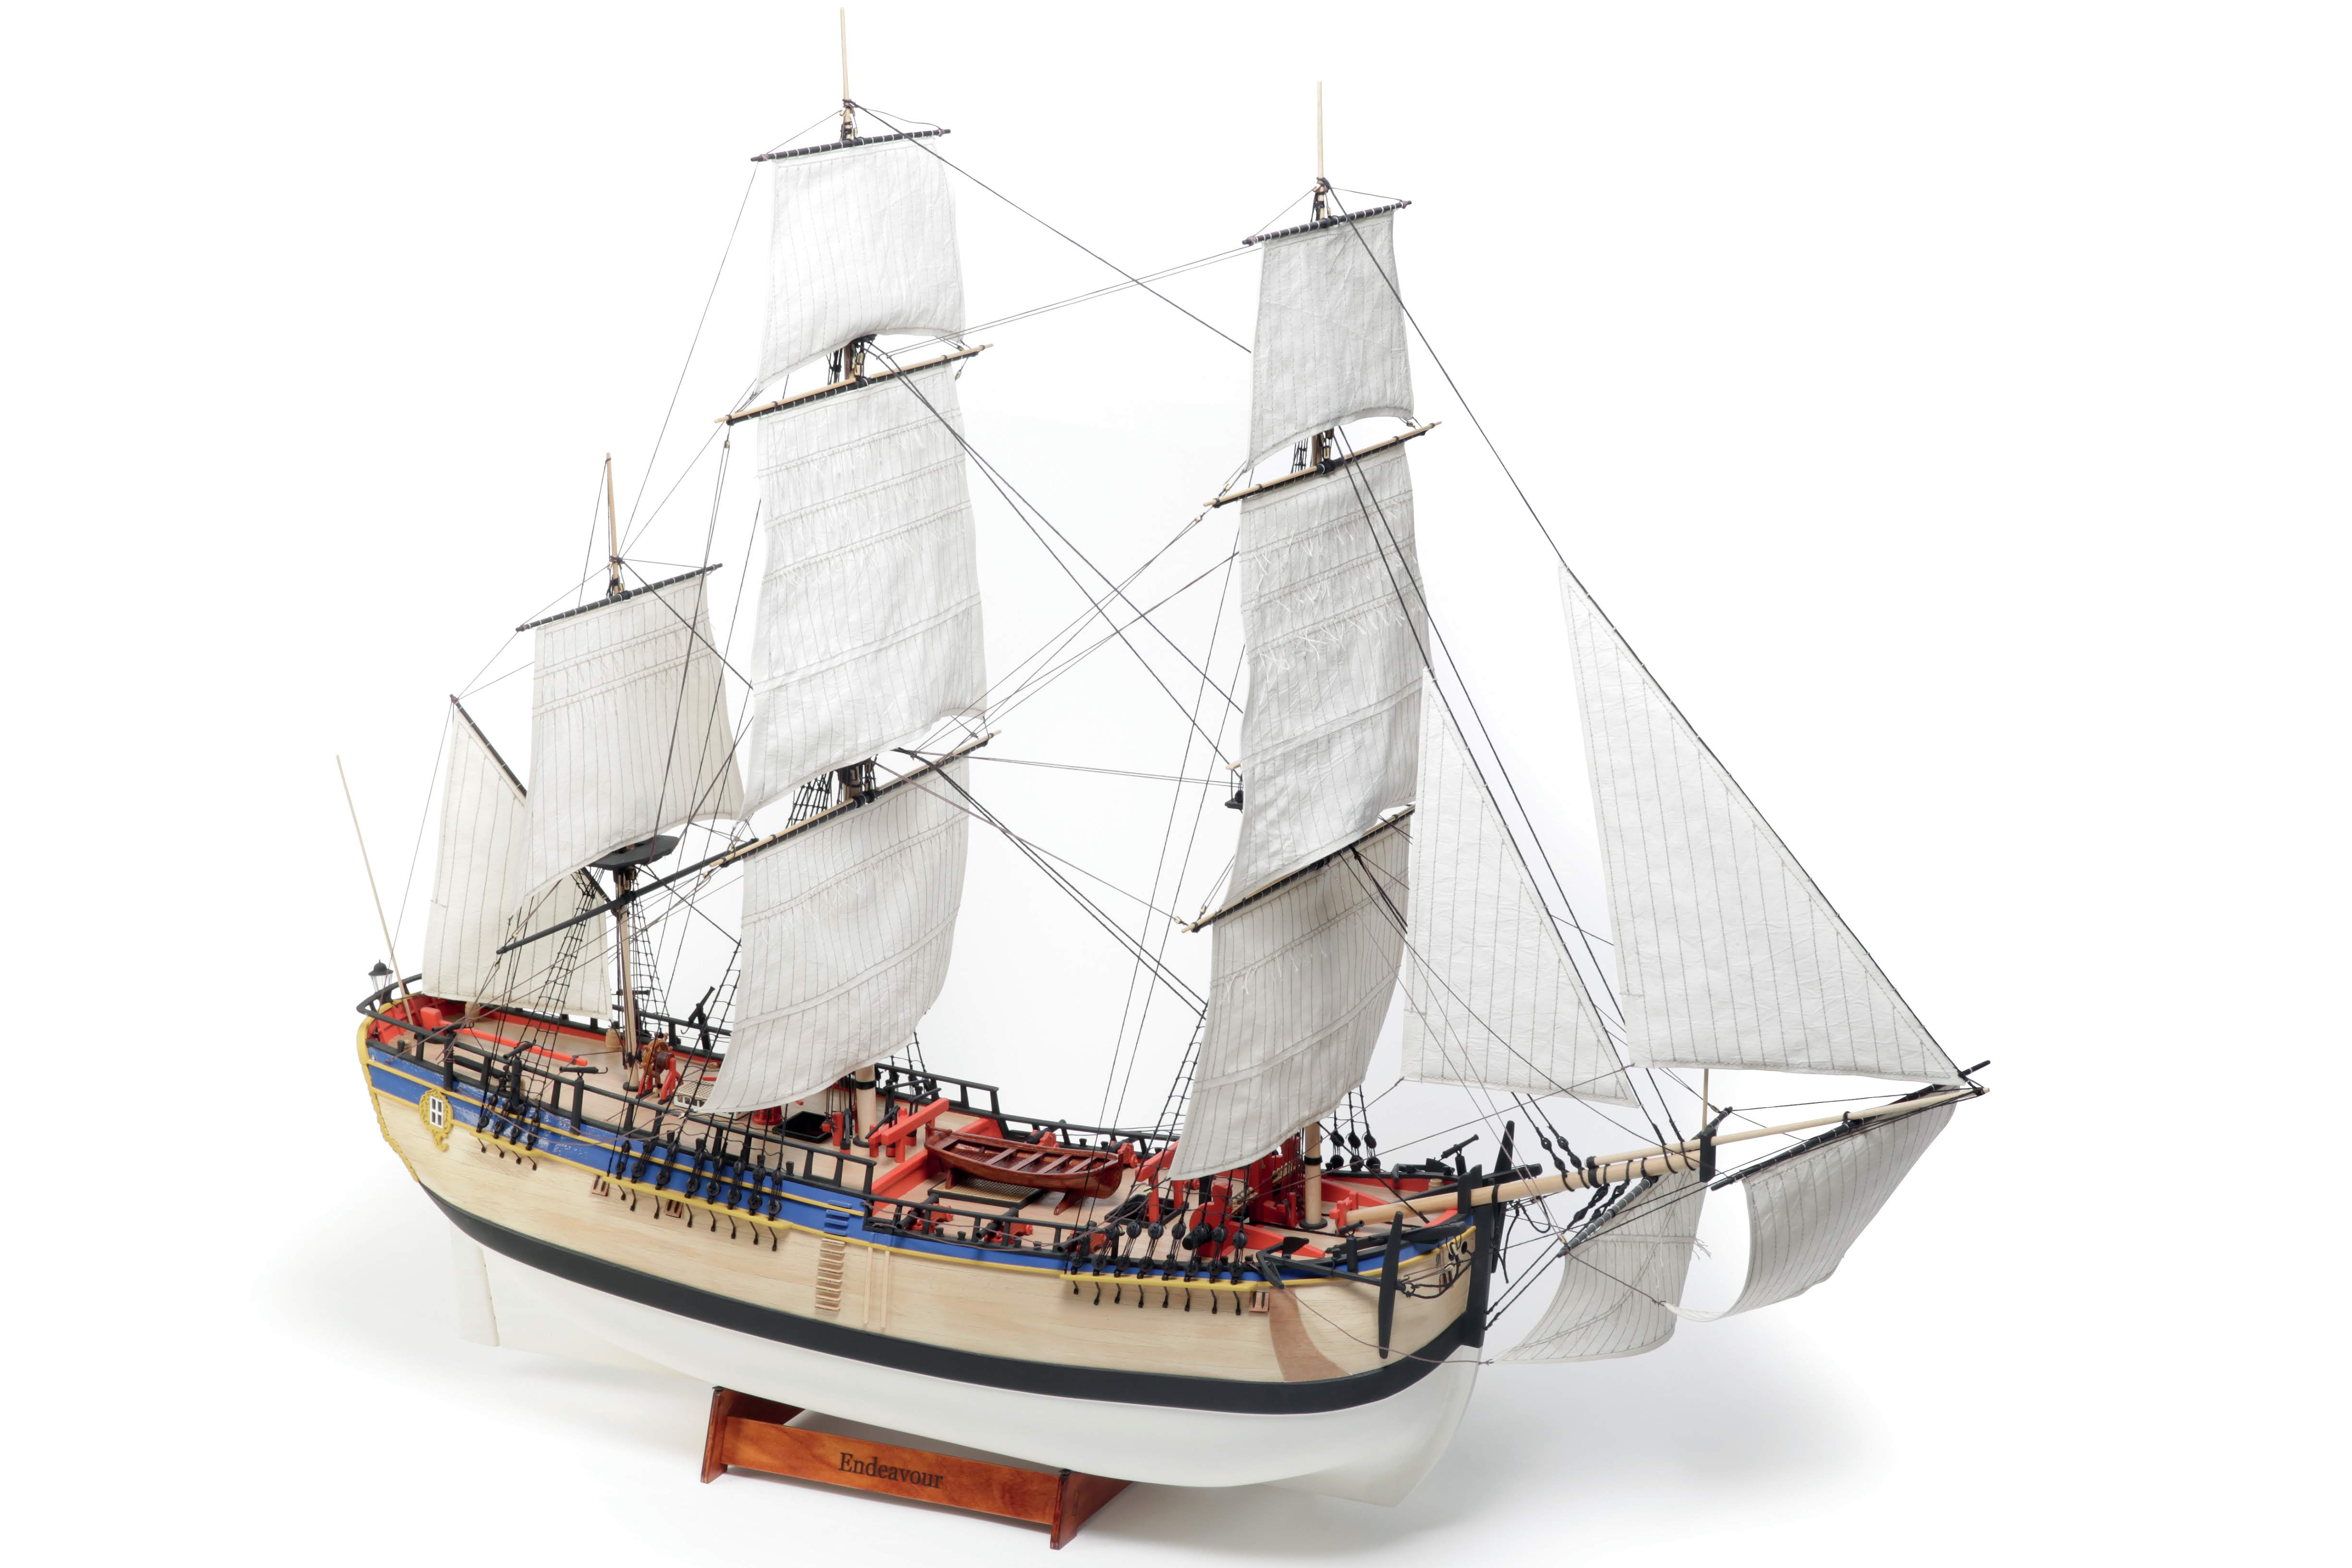 Billing Boats HMS Endeavour 1:50 Scale Wooden Hull